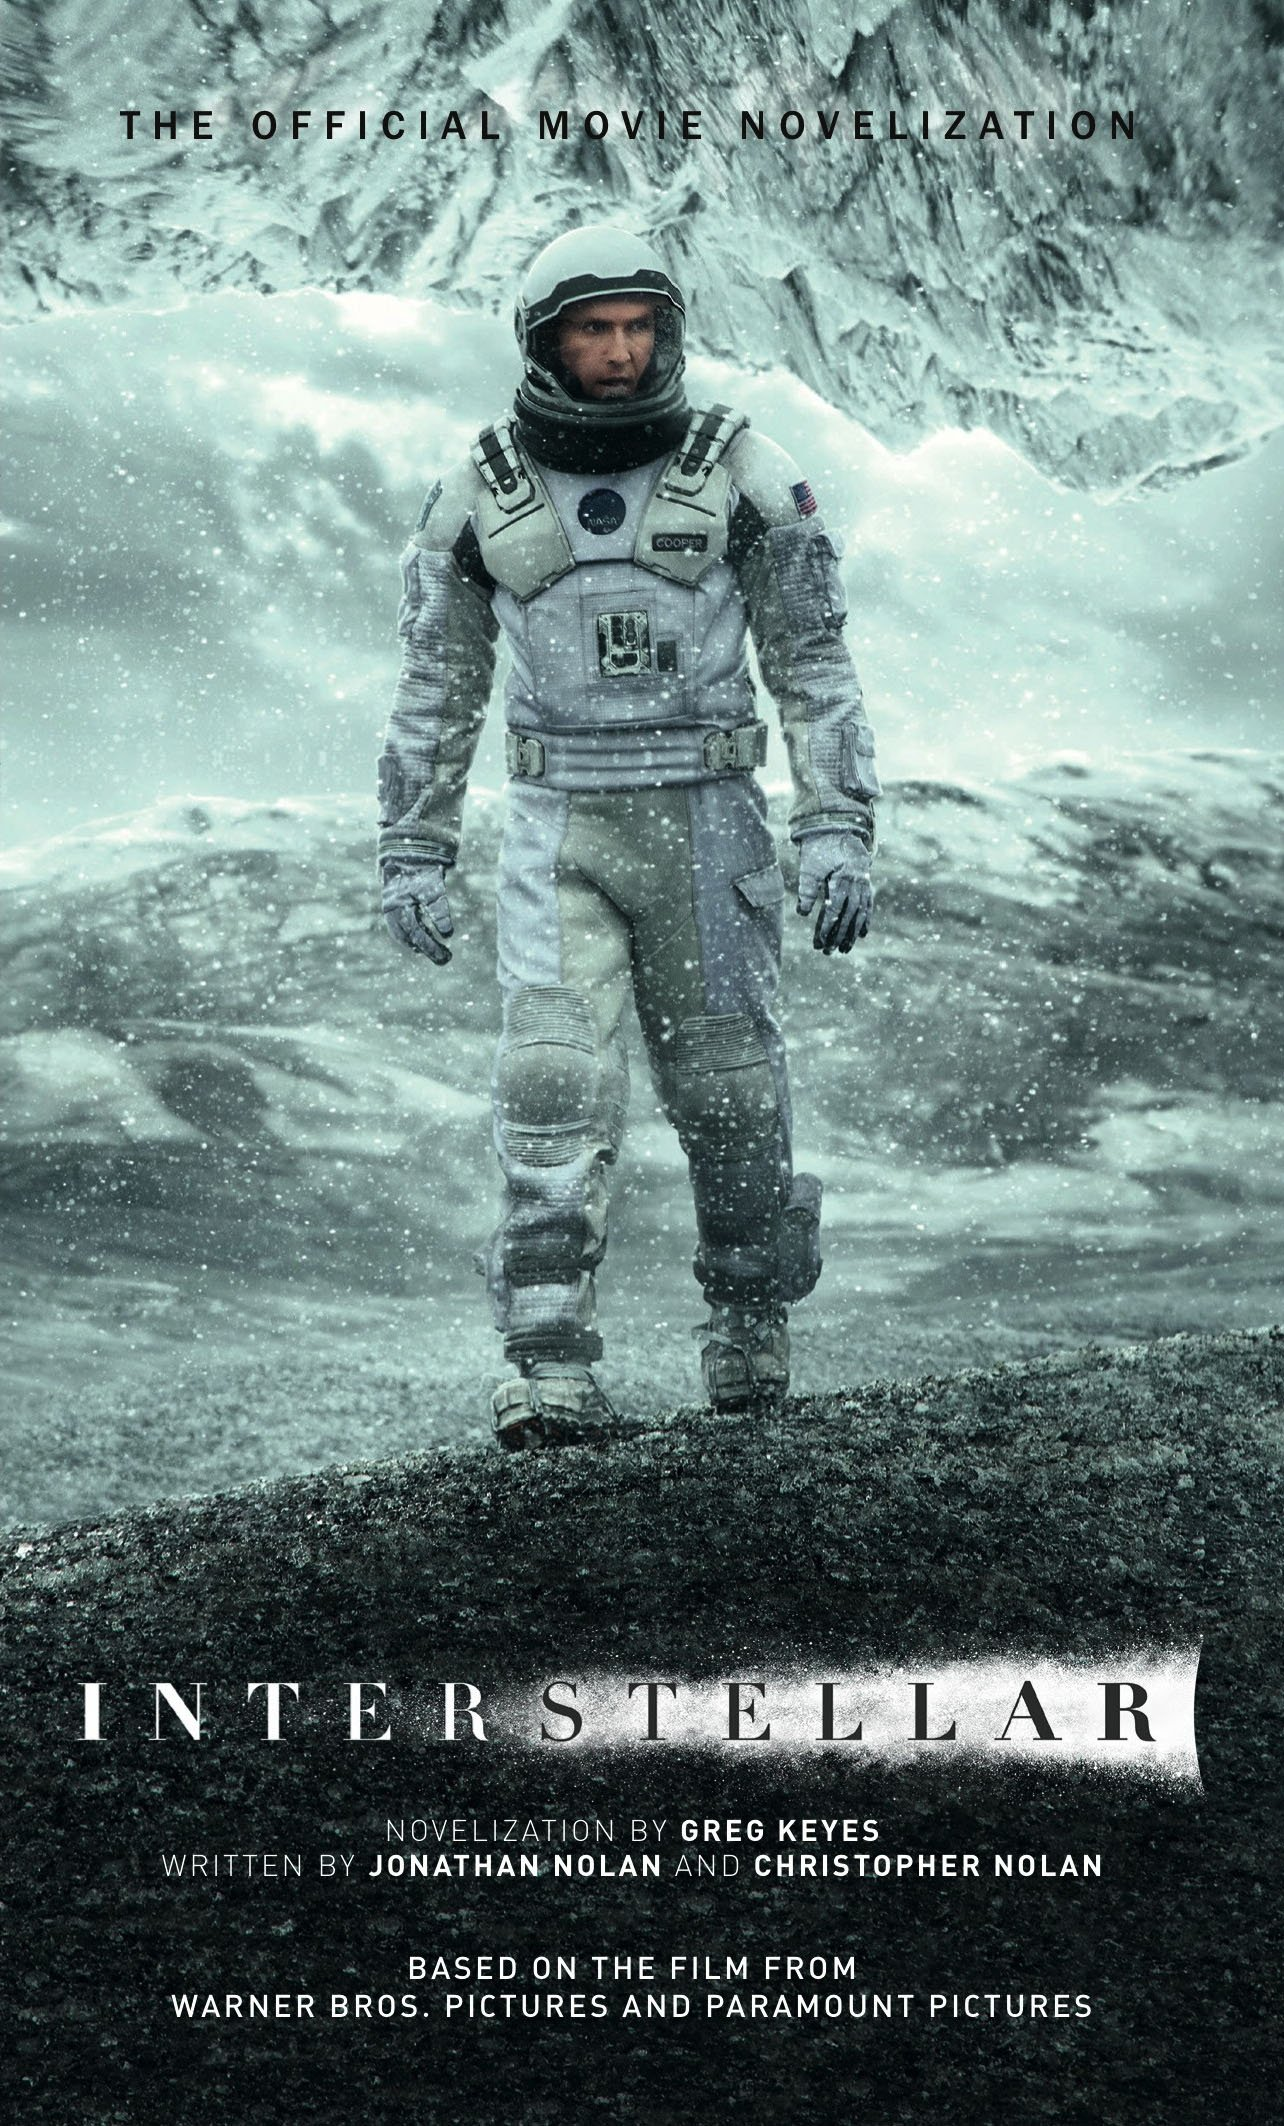 Interstellar: The Official Movie Novelization Mass Market Paperback –  November 11, 2014